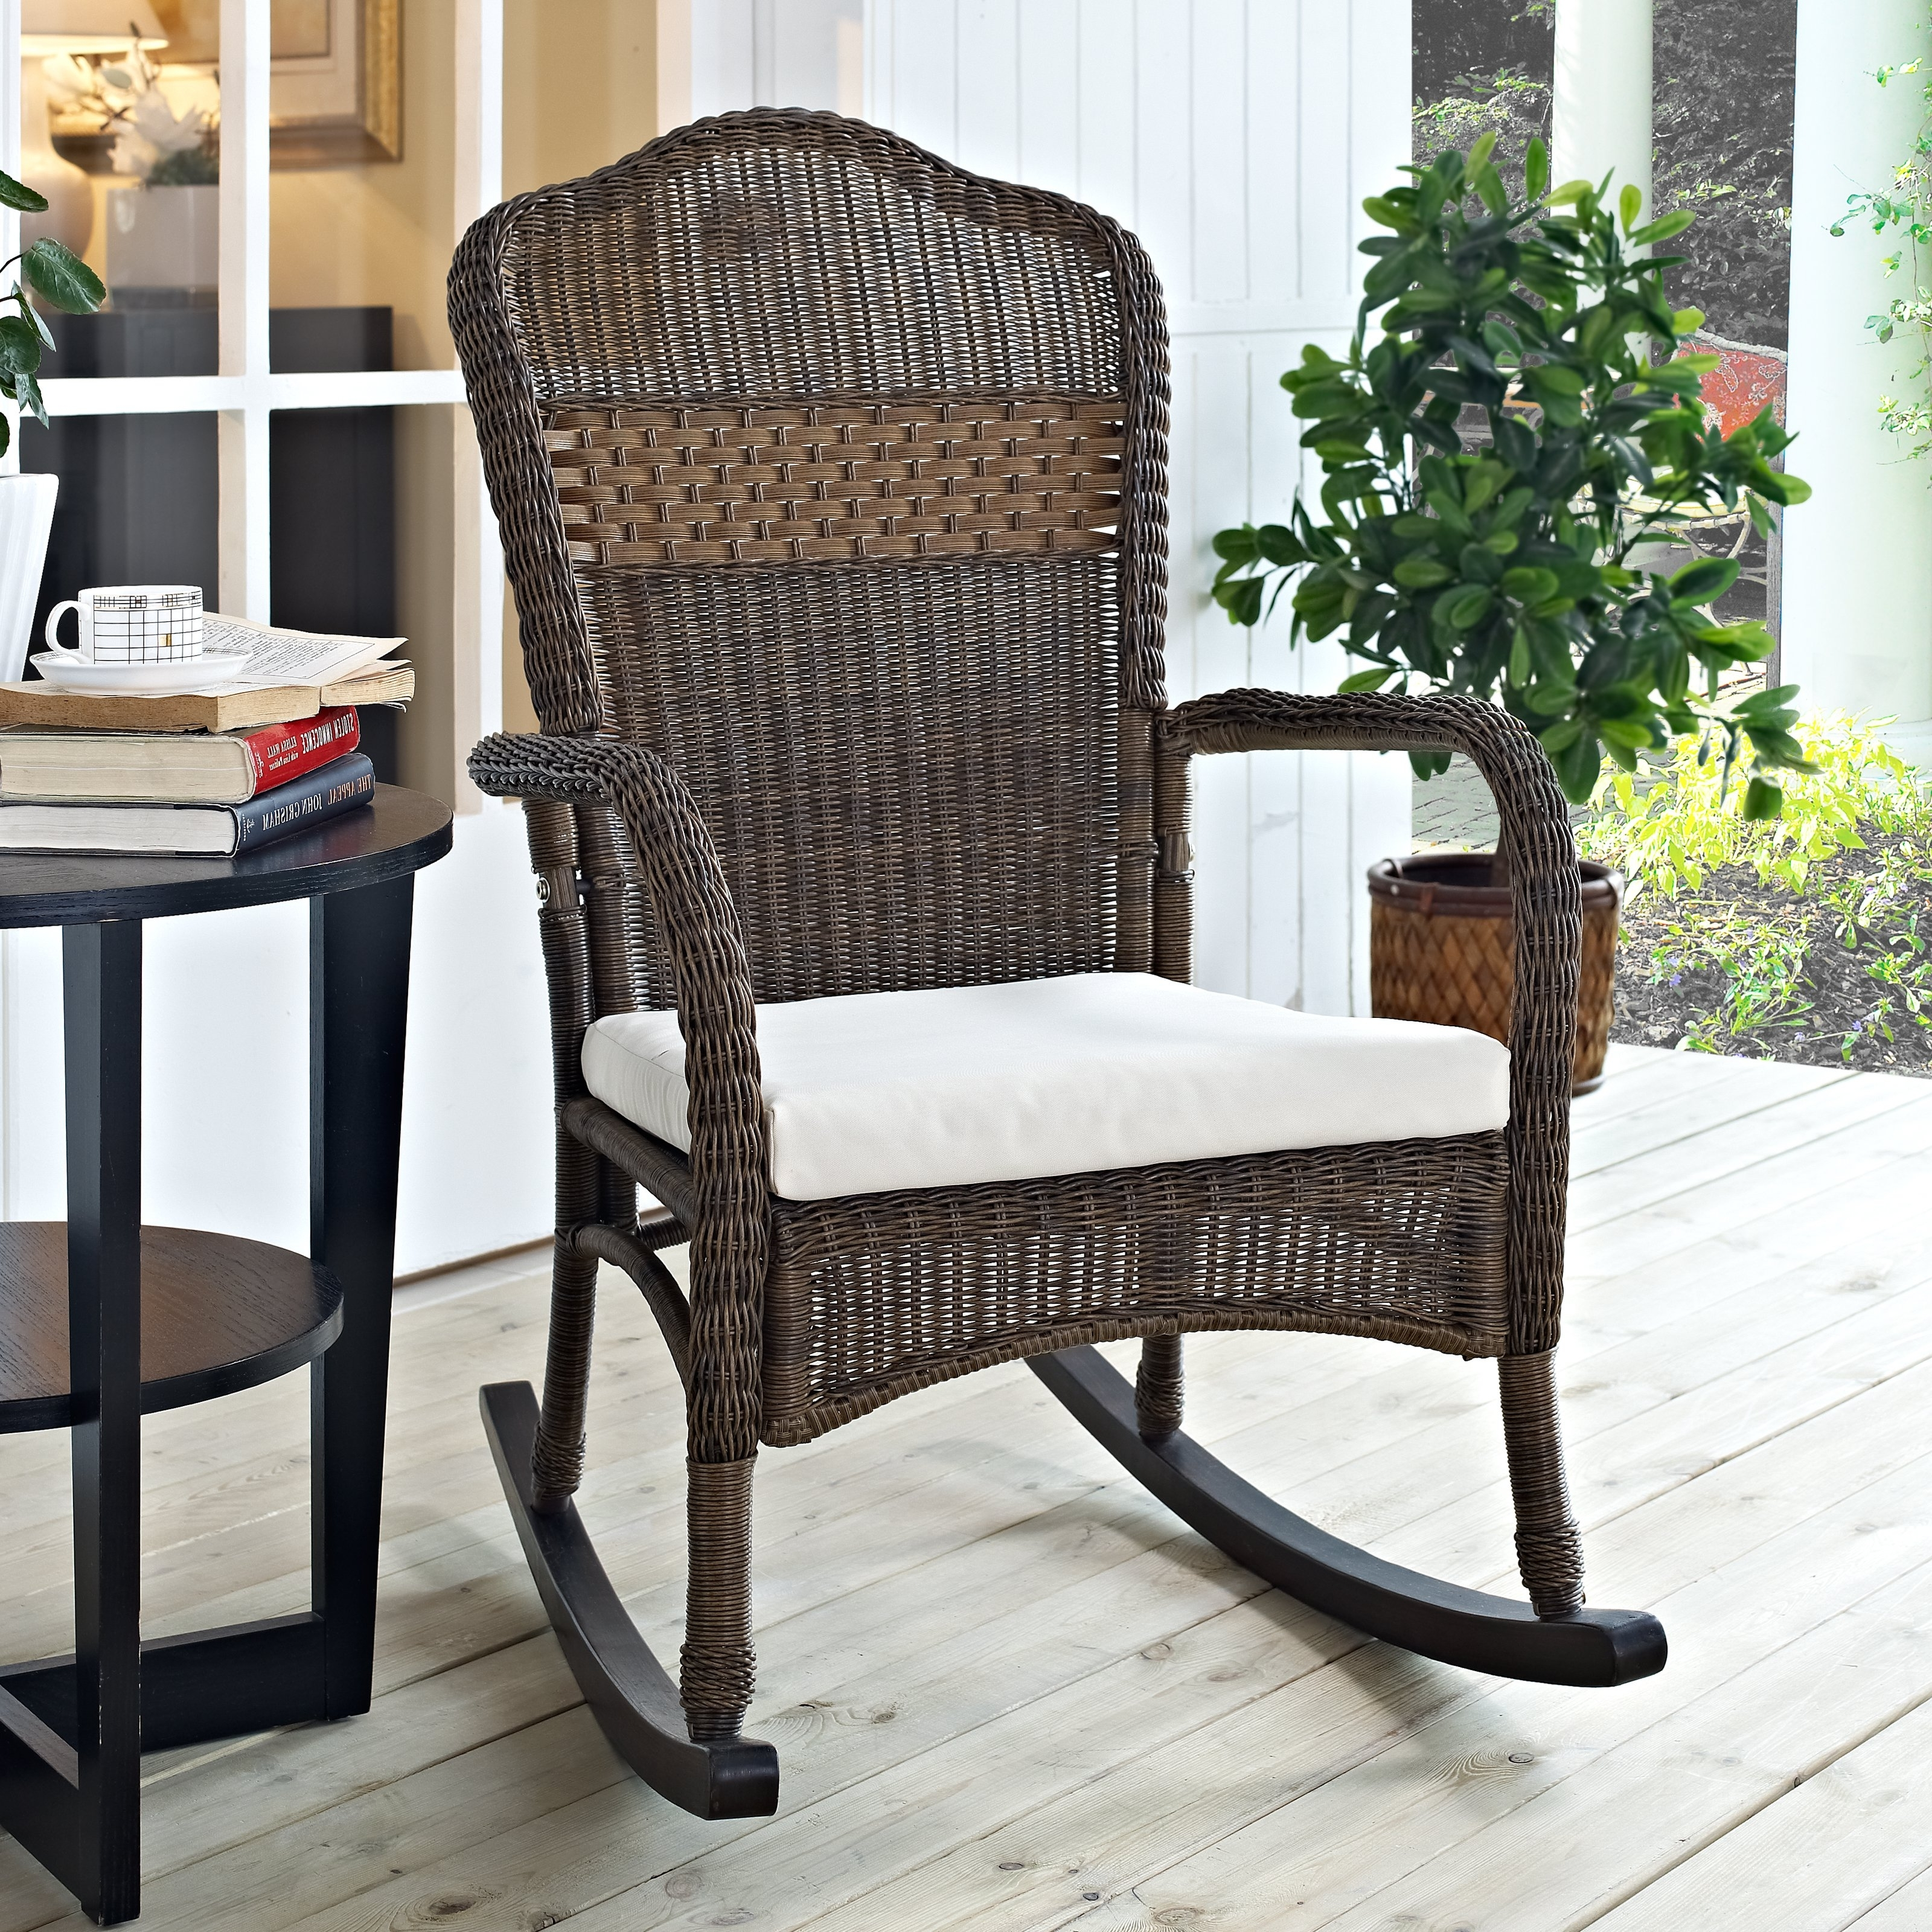 Preferred Coral Coast Mocha Resin Wicker Rocking Chair With Beige Cushion Inside Patio Rocking Chairs With Ottoman (View 15 of 20)